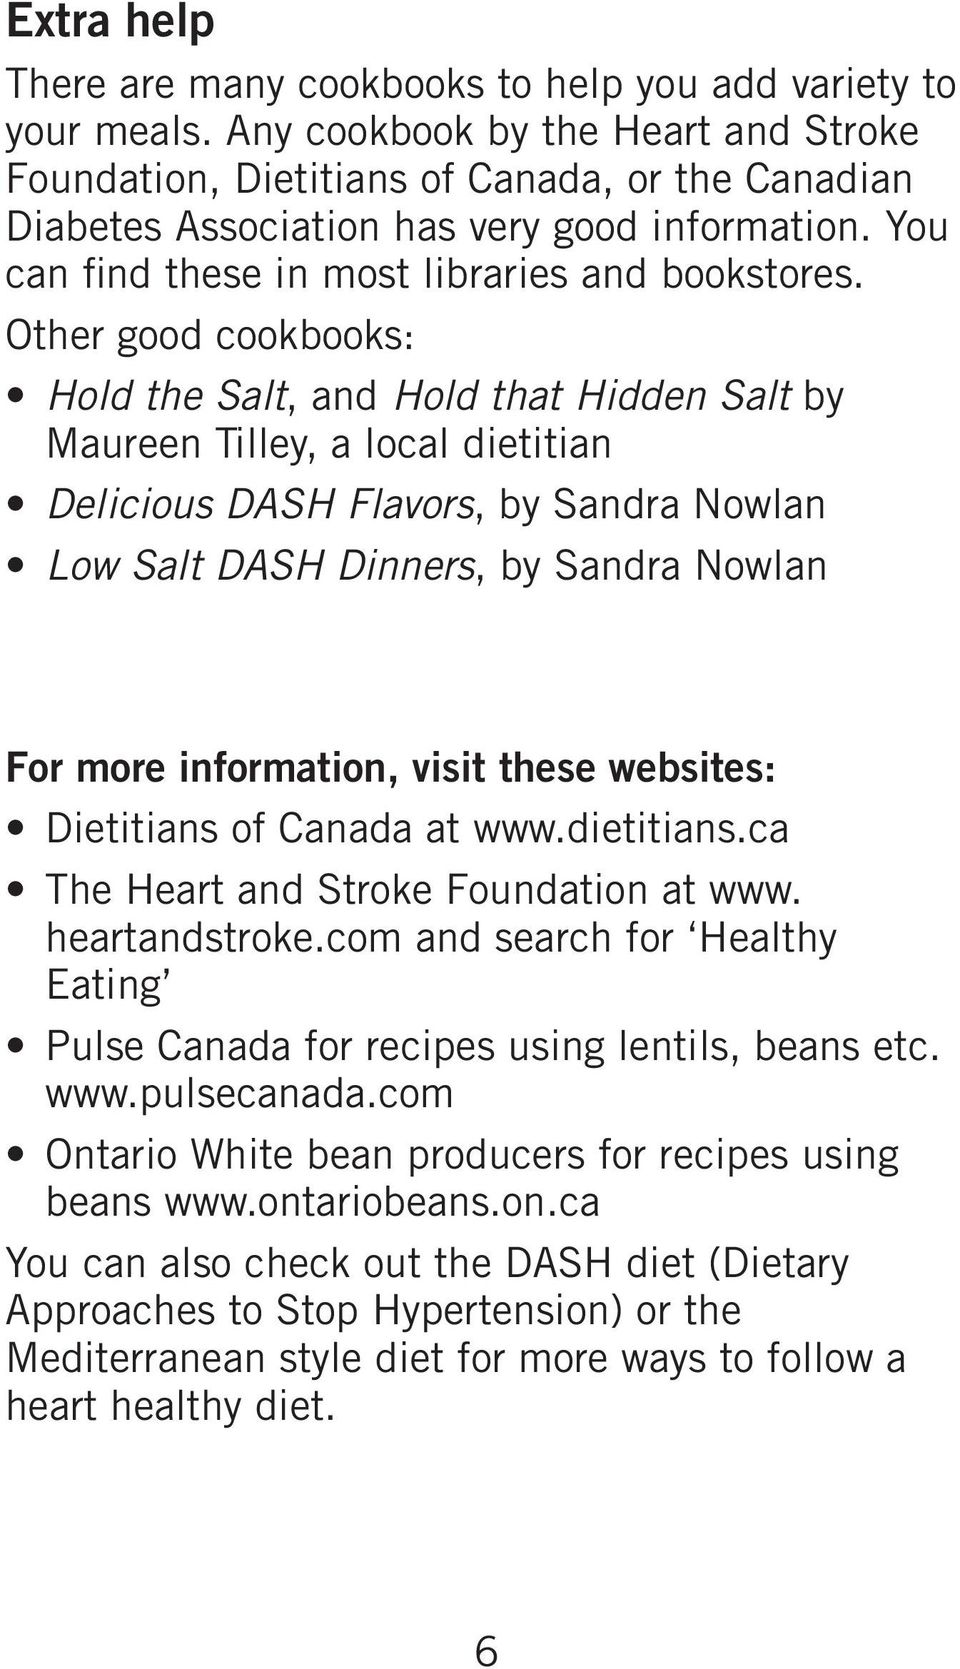 Other good cookbooks: Hold the Salt, and Hold that Hidden Salt by Maureen Tilley, a local dietitian Delicious DASH Flavors, by Sandra Nowlan Low Salt DASH Dinners, by Sandra Nowlan For more